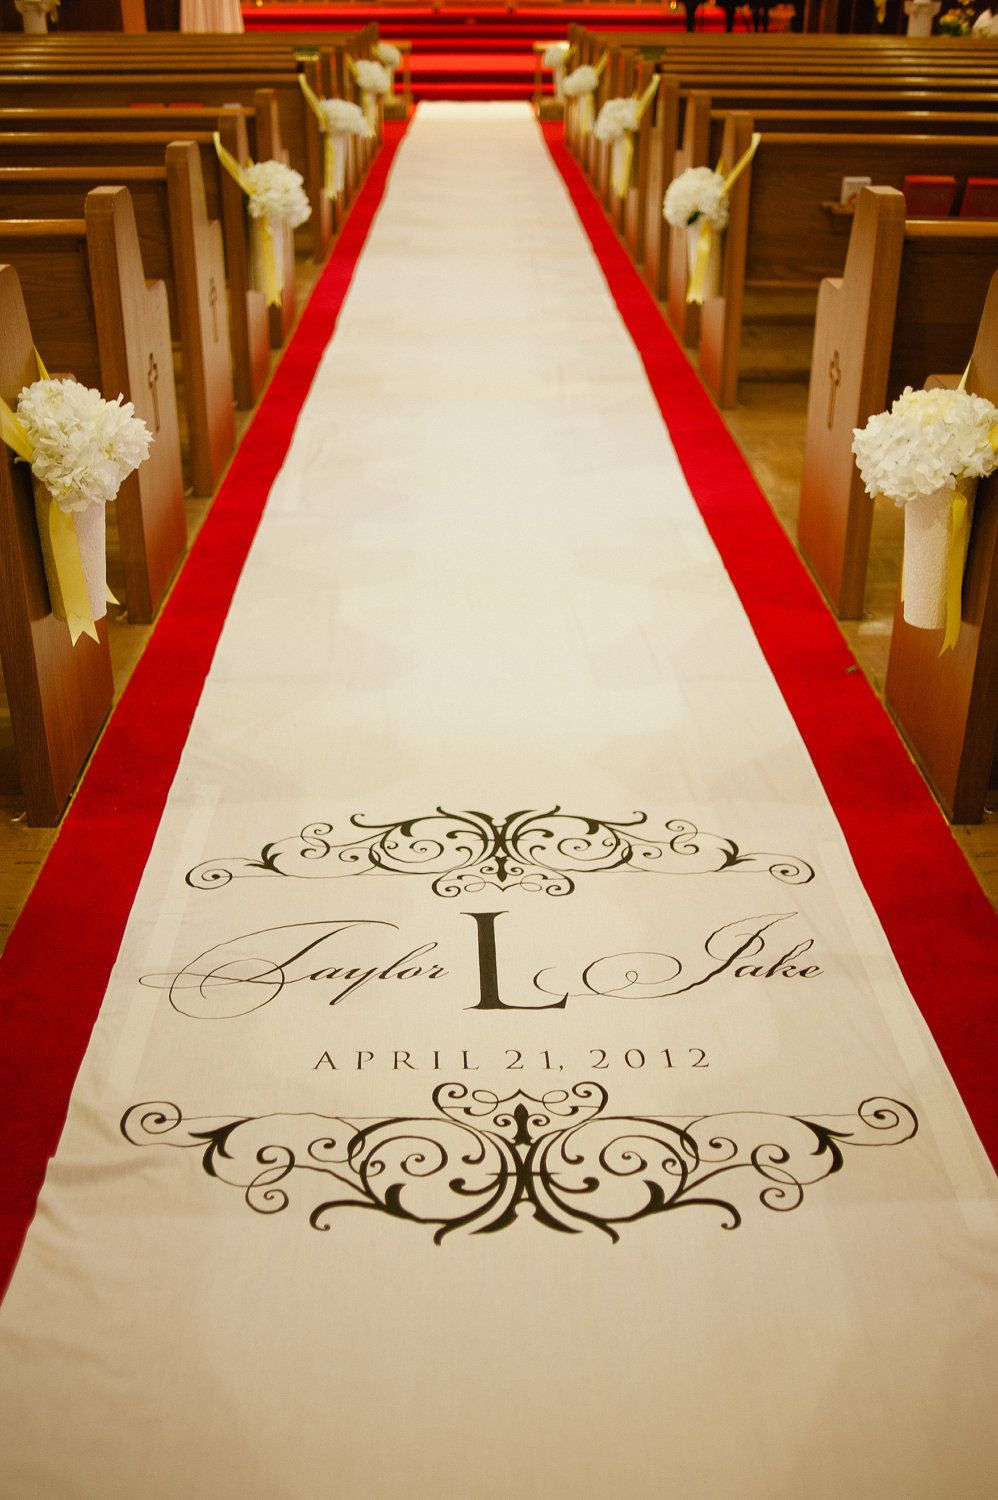 aisle runner wedding aisle runner custom aisle runner quality fabric aisle runner real fabric will not rip or tear